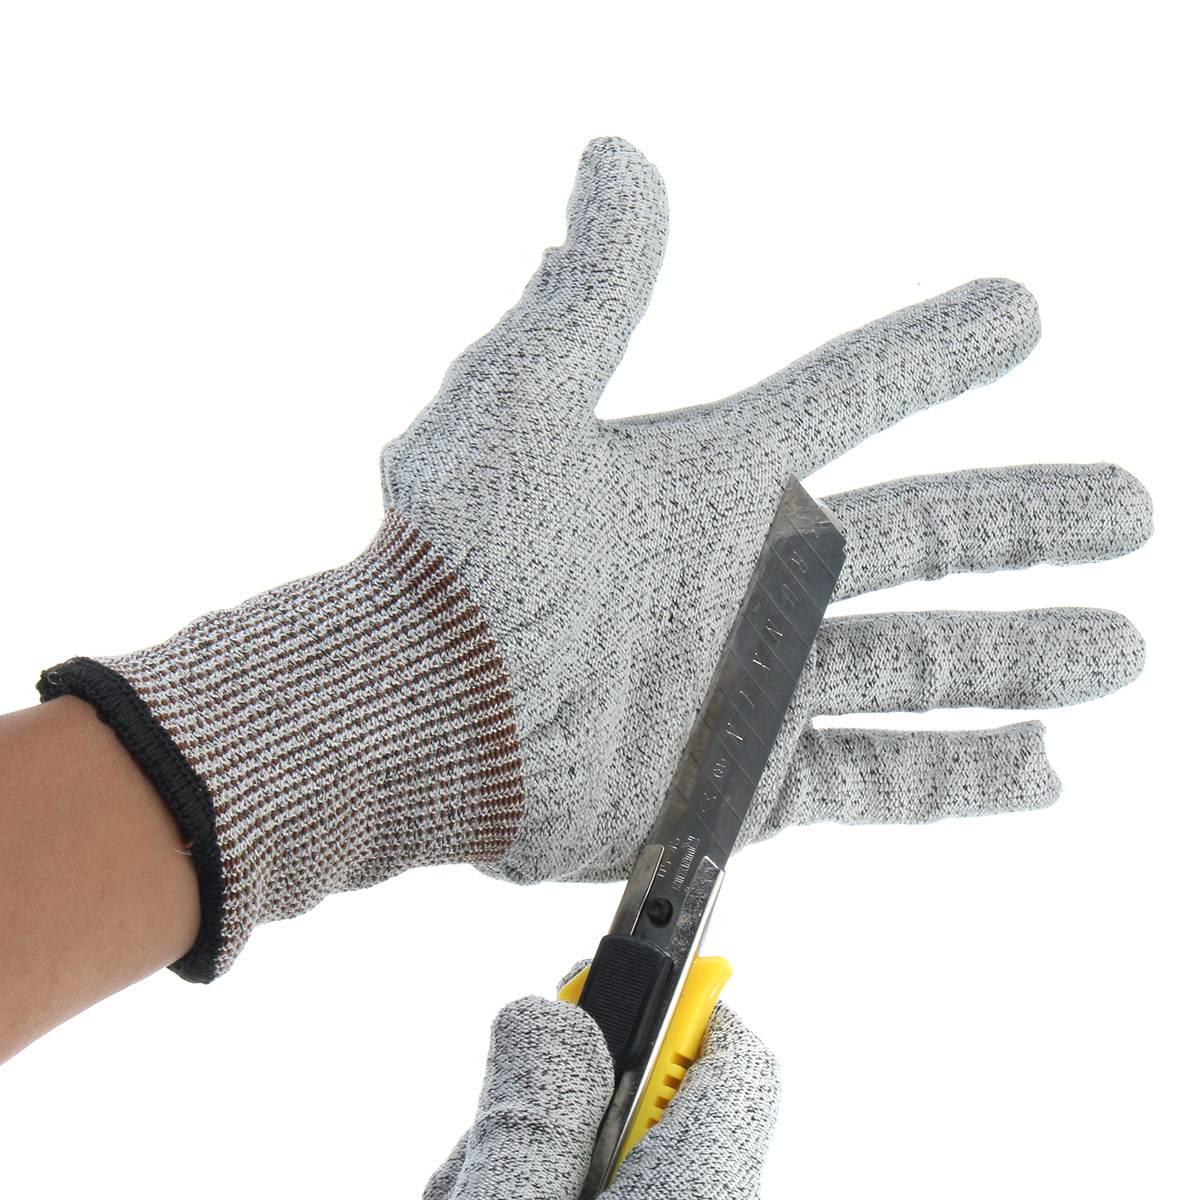 Safurance Safety Cut Proof Stab Resistant Butcher Gloves Cut-Resistant Safety Gloves maritime safety